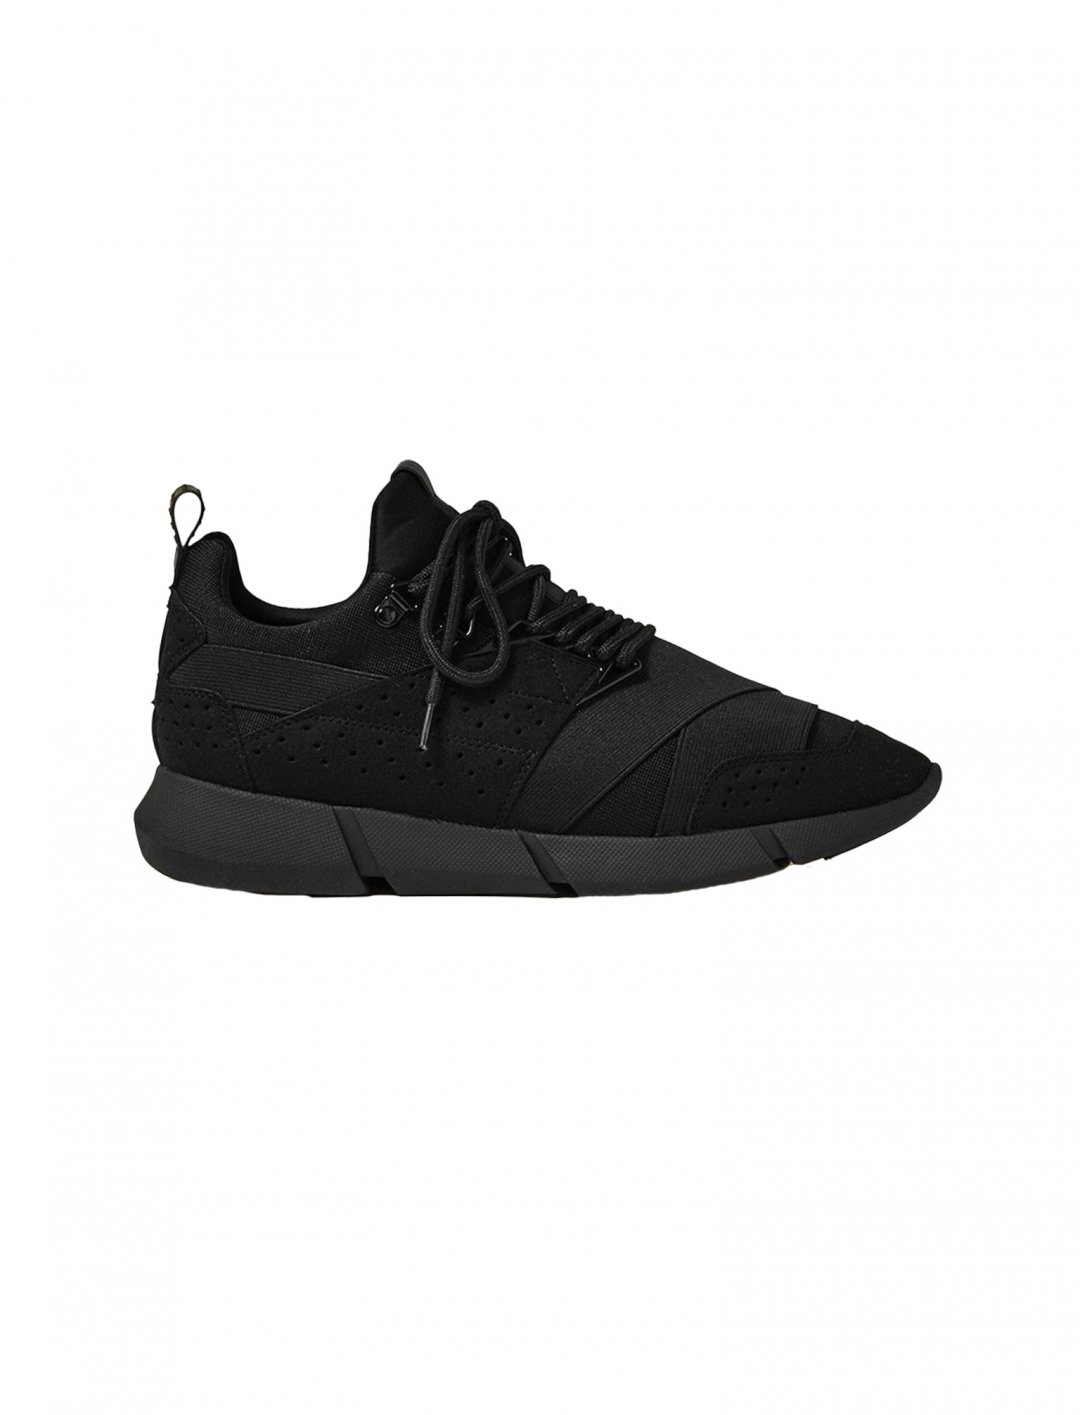 Cortica Black Canvas Trainers Shoes Cortica